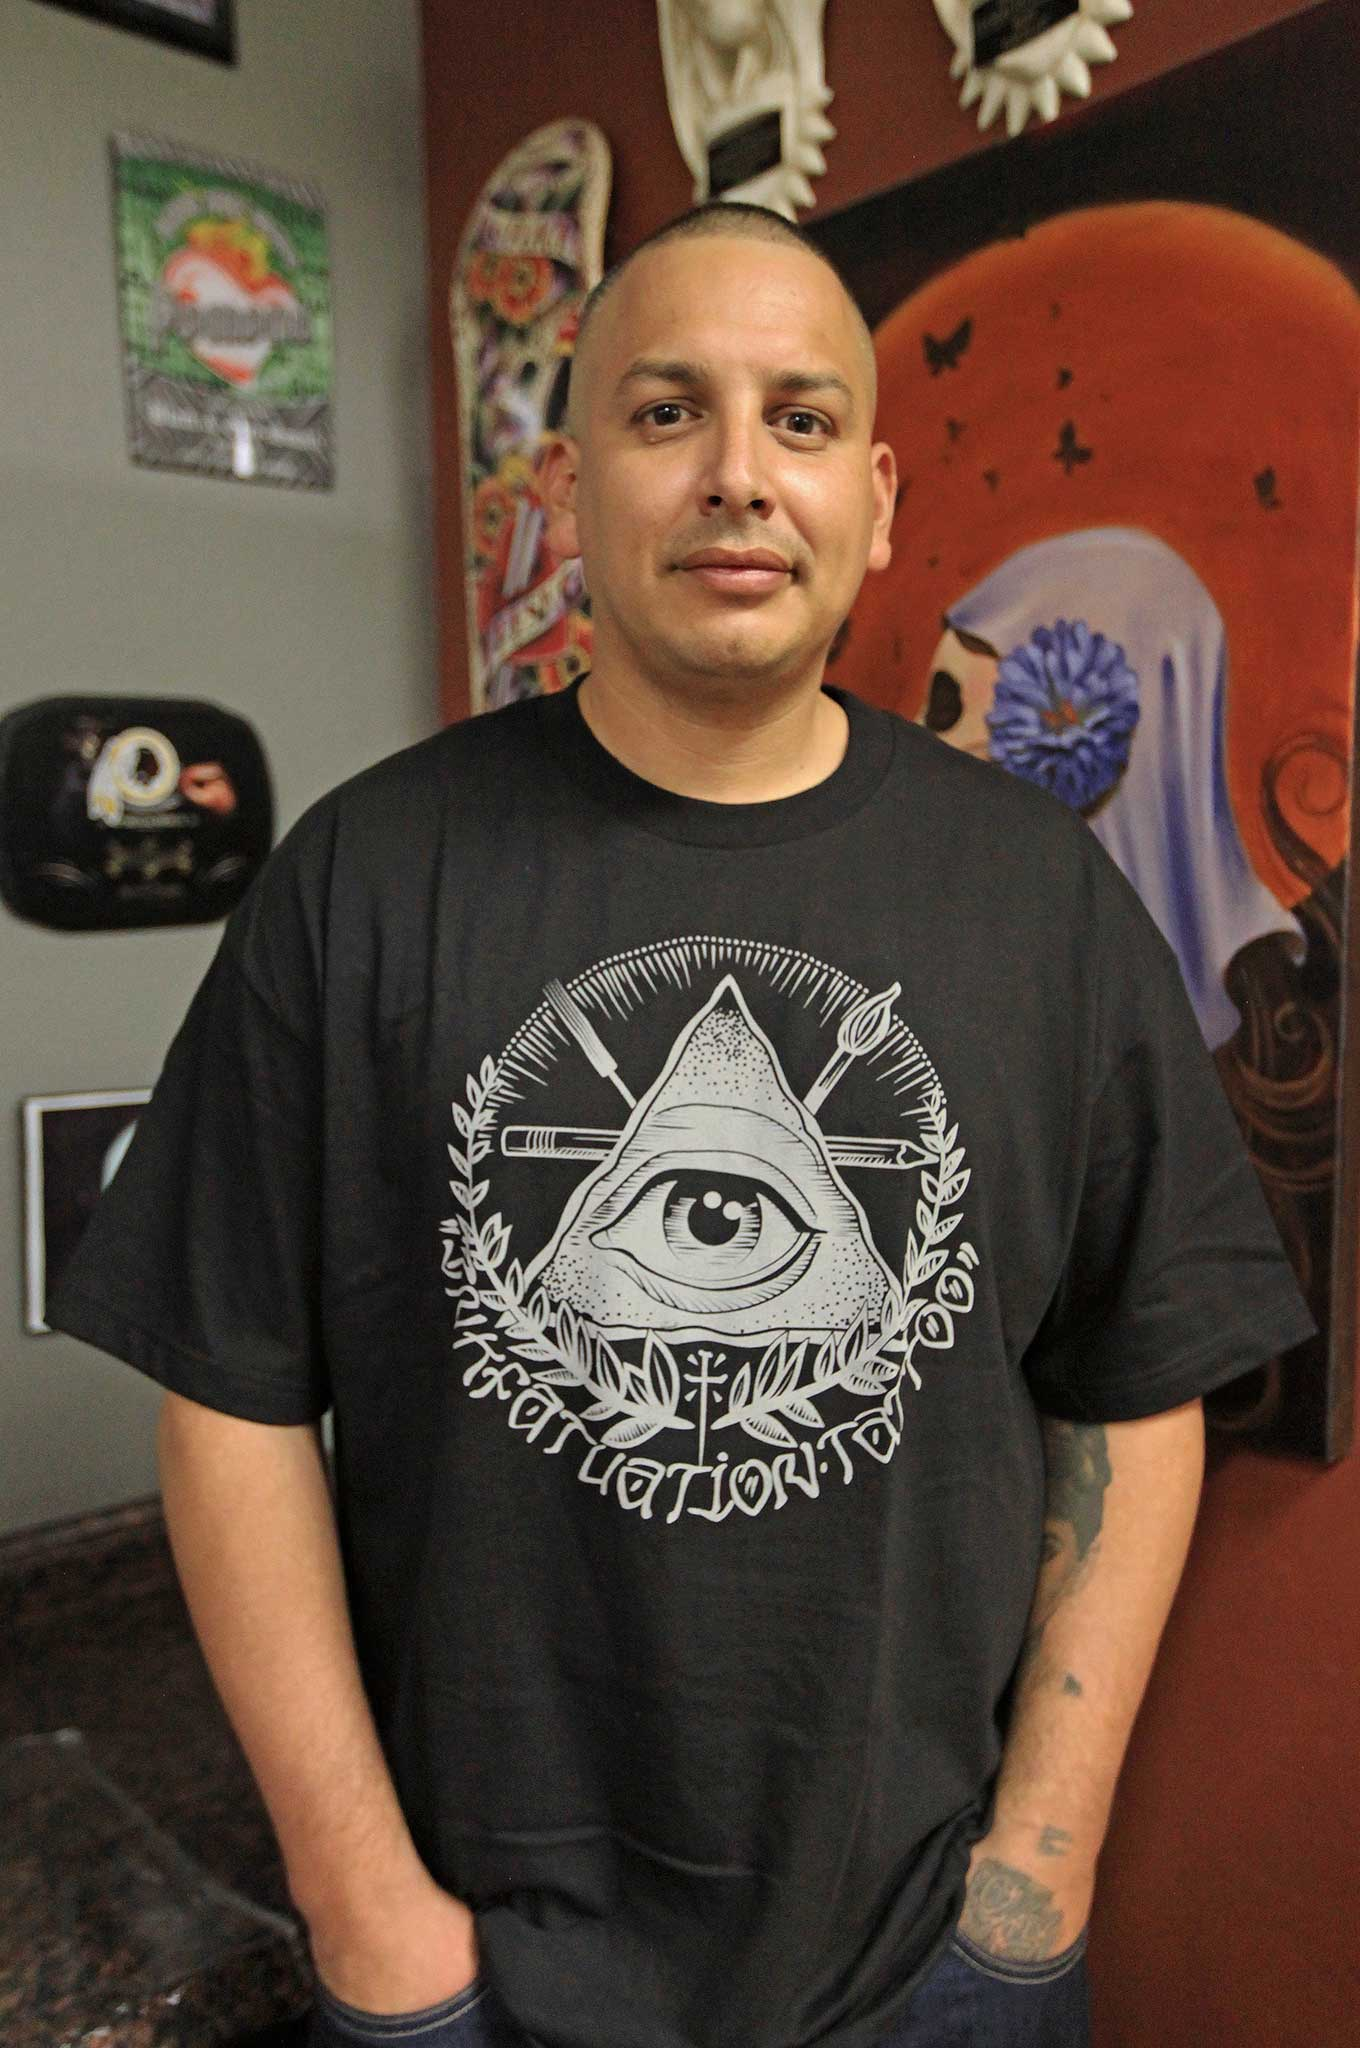 Gilbert silas a tattoo artist from oxnard for Inkfatuation tattoo shop bakersfield